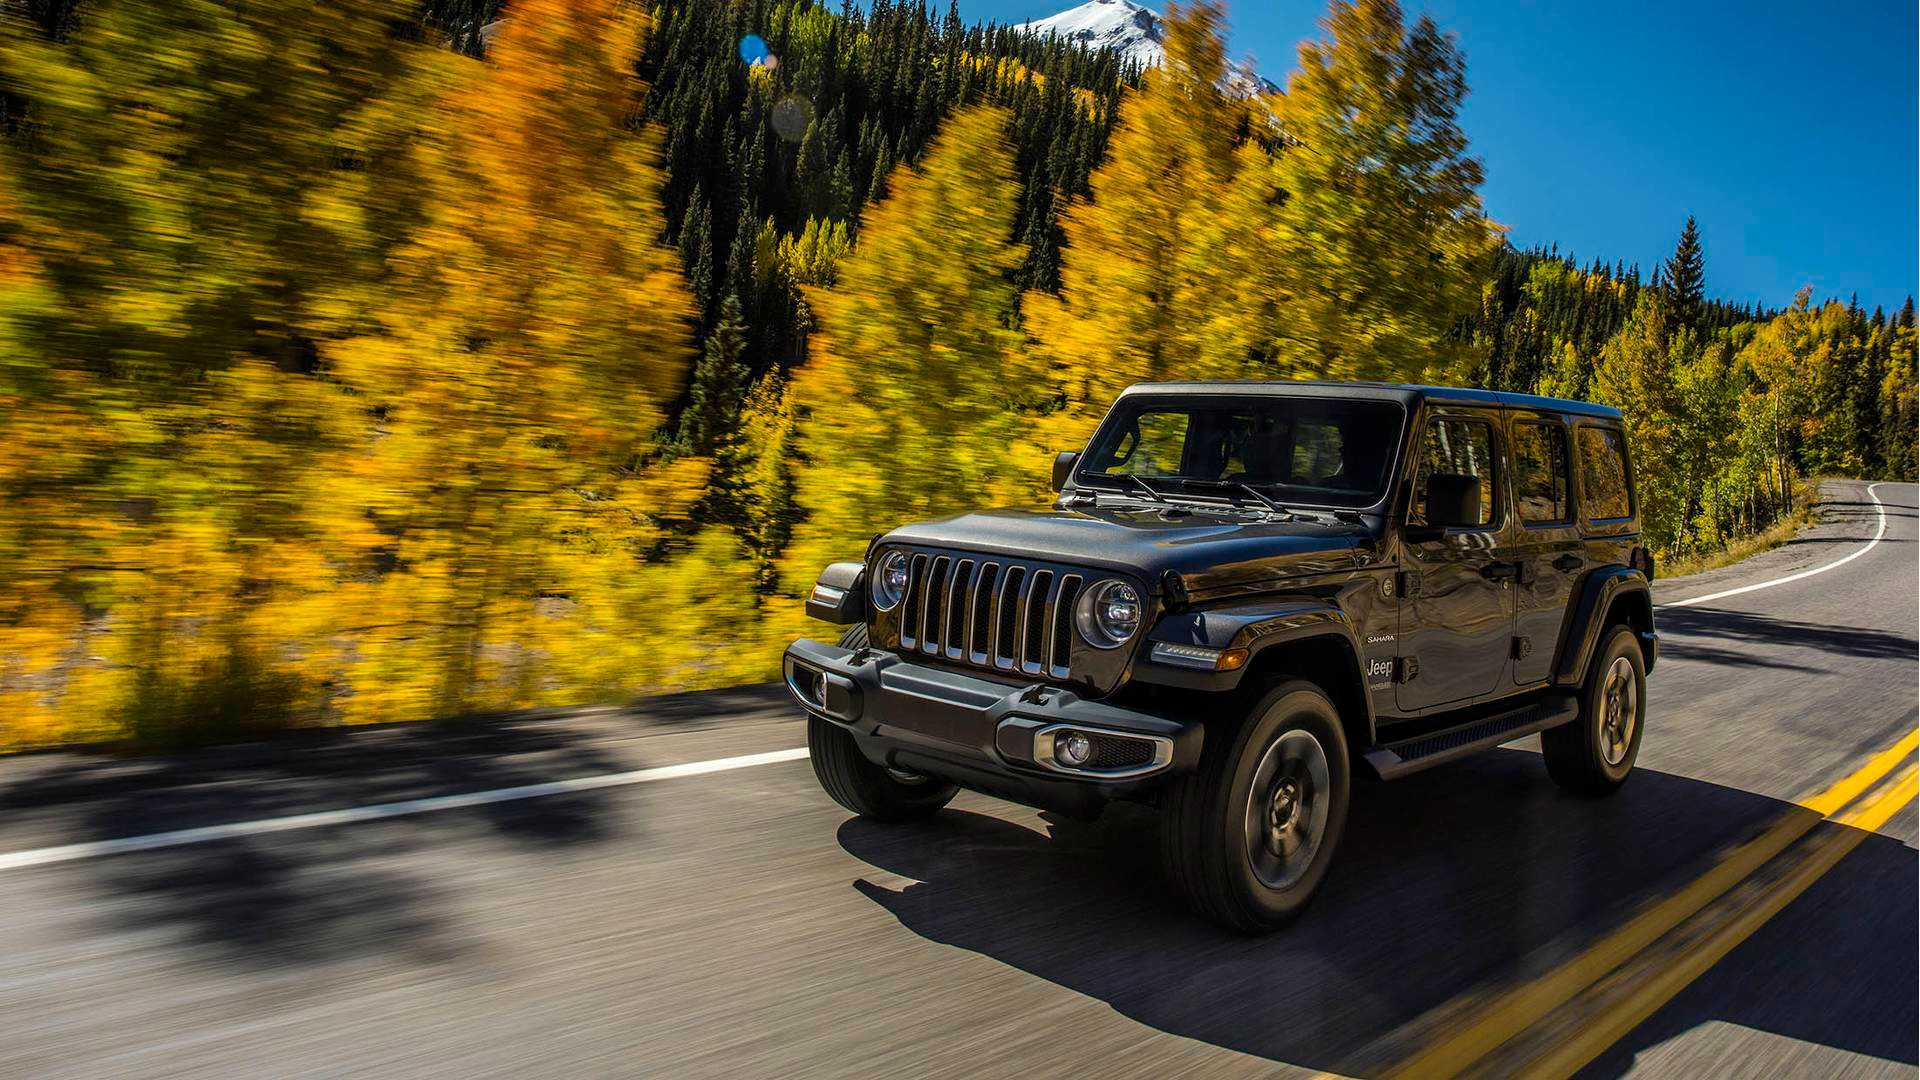 2021 Jeep Wrangler Plug-in Hybrid >> Jeep Wrangler Phev Production Inches Forward With New Announcement